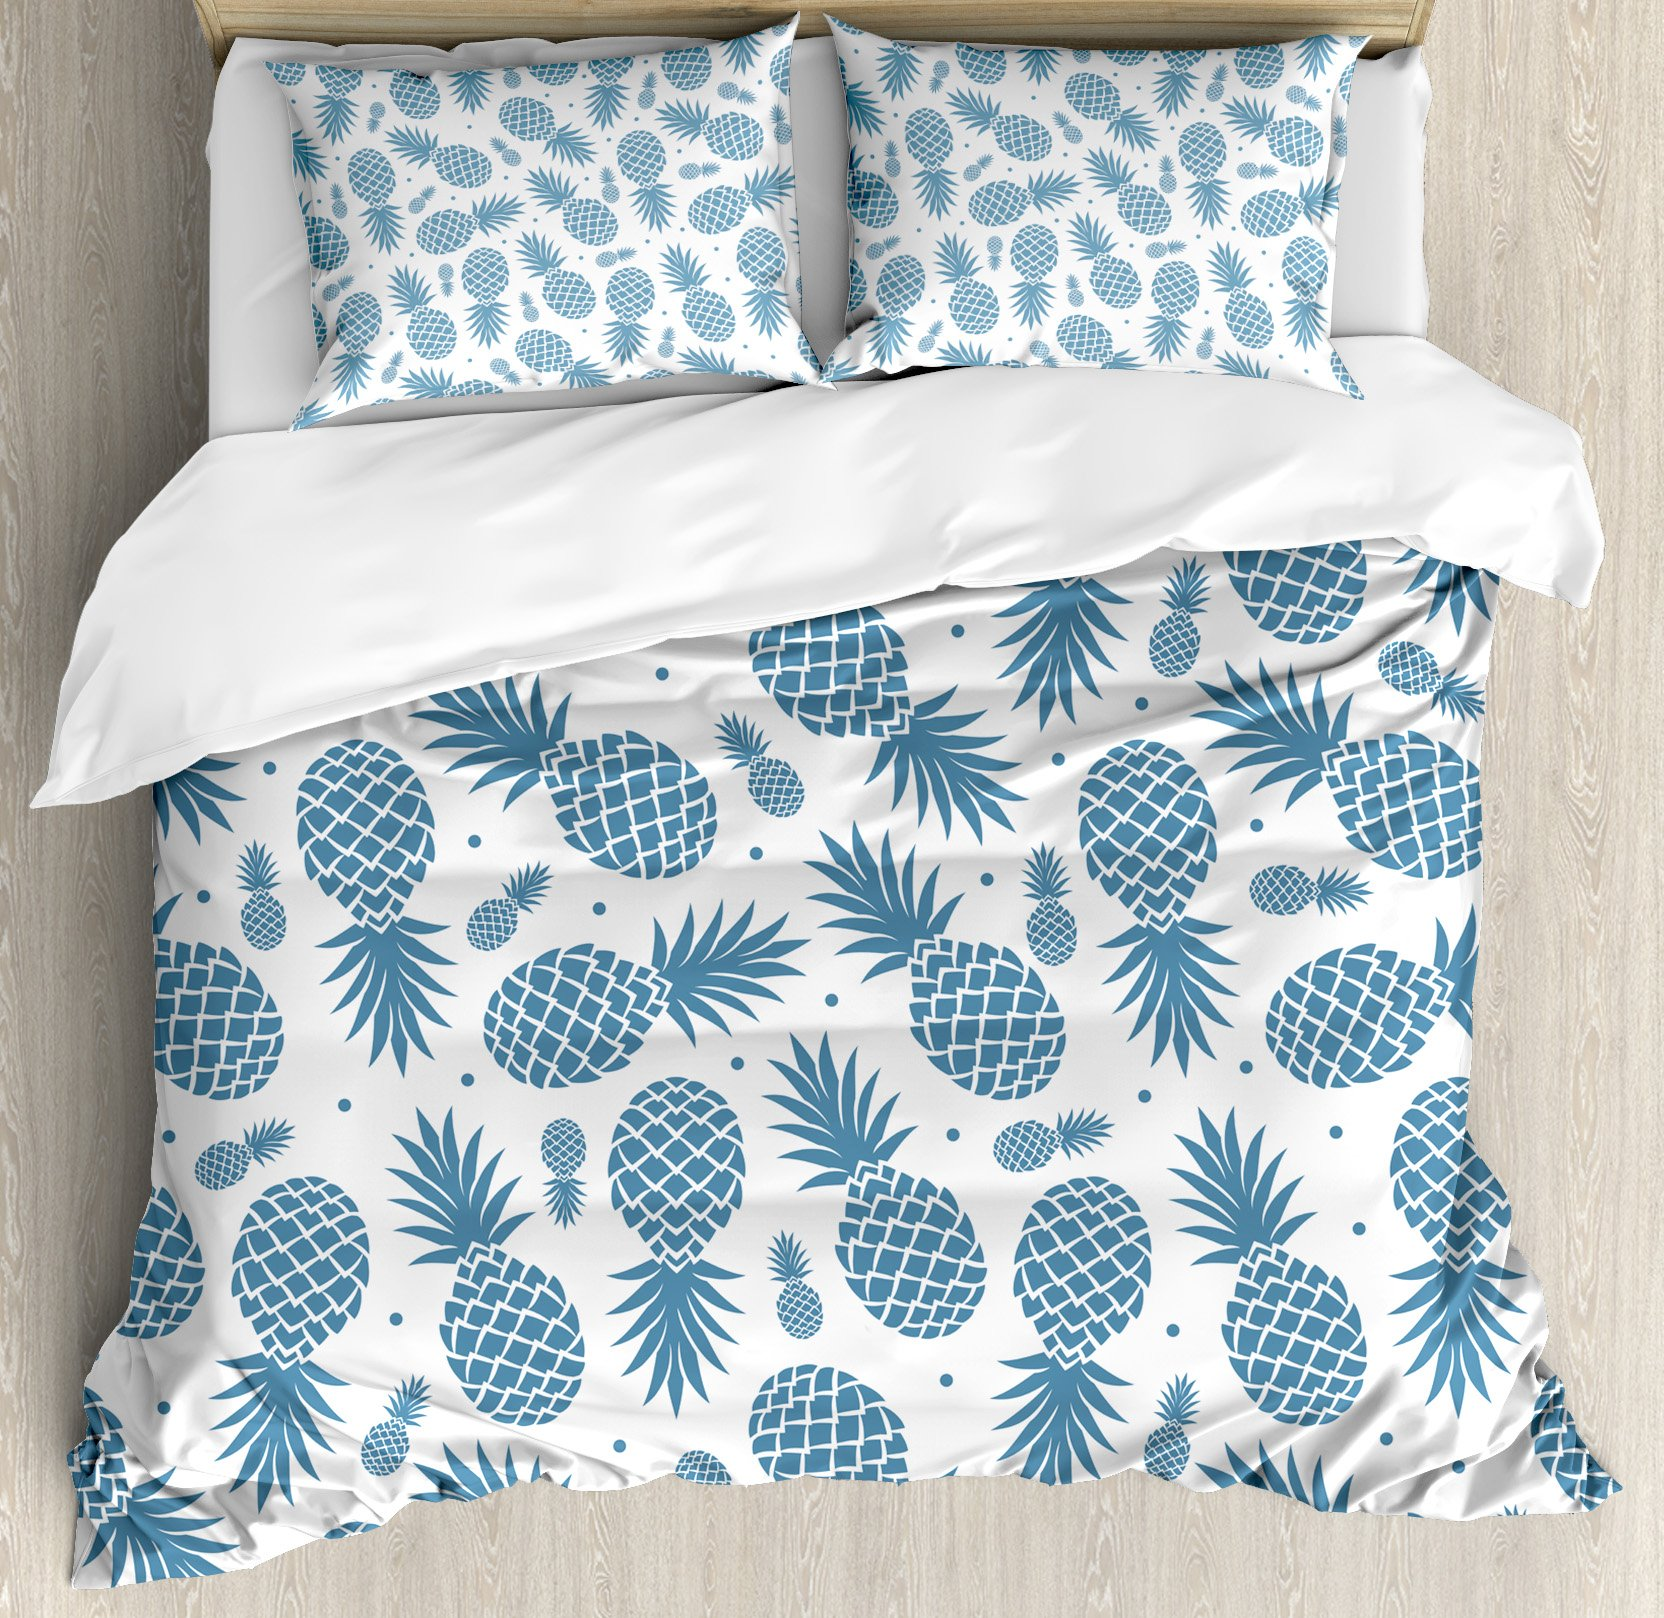 Pineapple Duvet Cover Set King Size by Ambesonne, Island Themed Minimalistic Multi-Sized Tropic Fruity Pineapple Printed Vintage, Decorative 3 Piece Bedding Set with 2 Pillow Shams, Blue White by Ambesonne